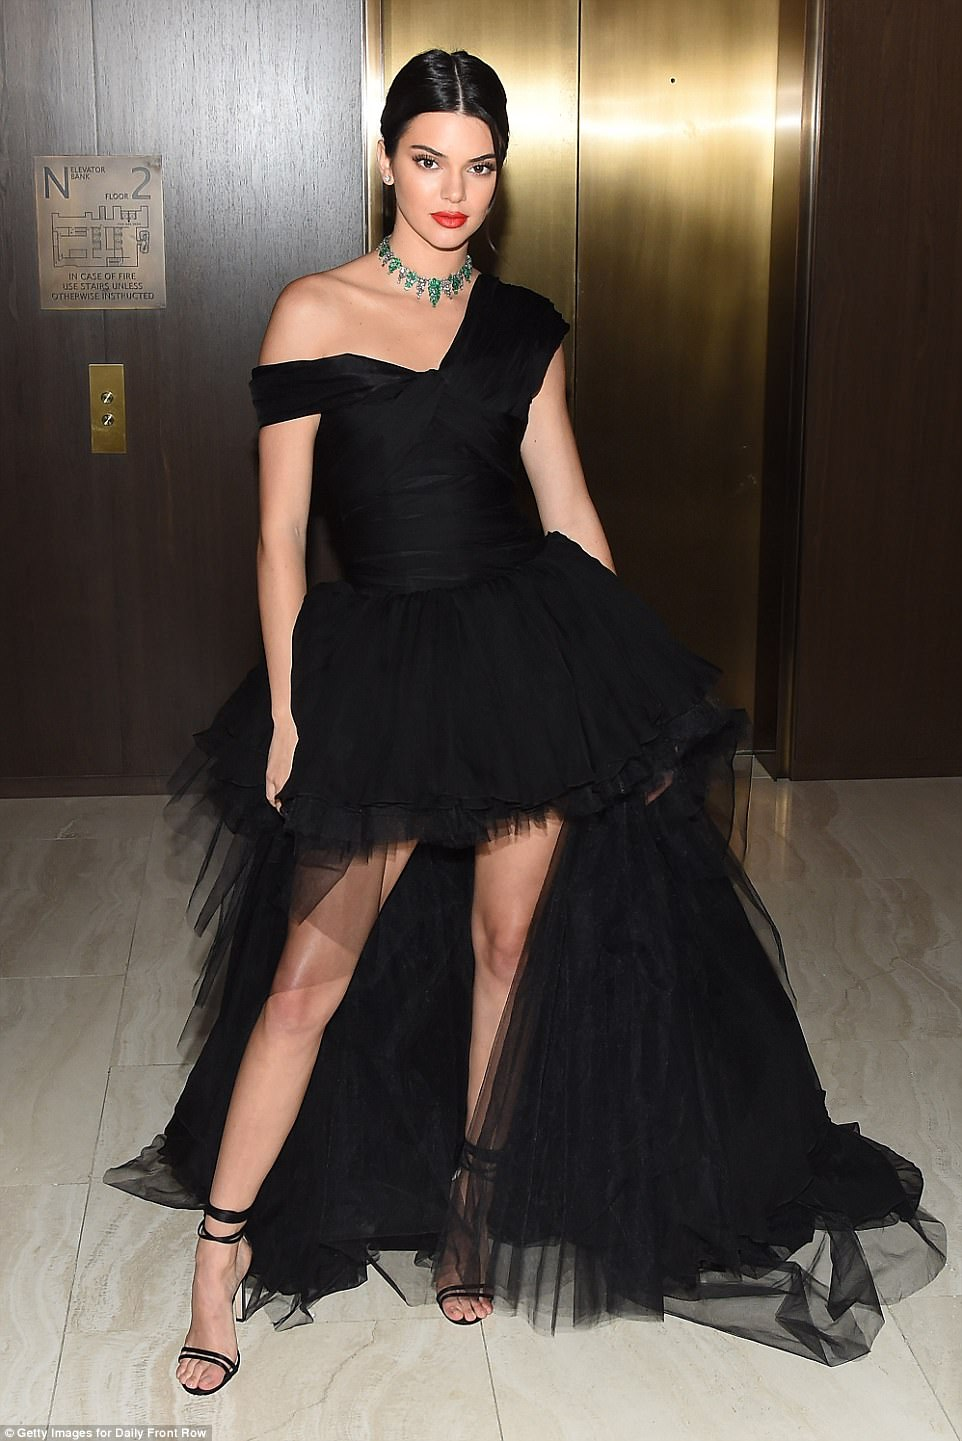 turns-out-chanel-was-right-you-must-have-a-lbd-in-your-closet